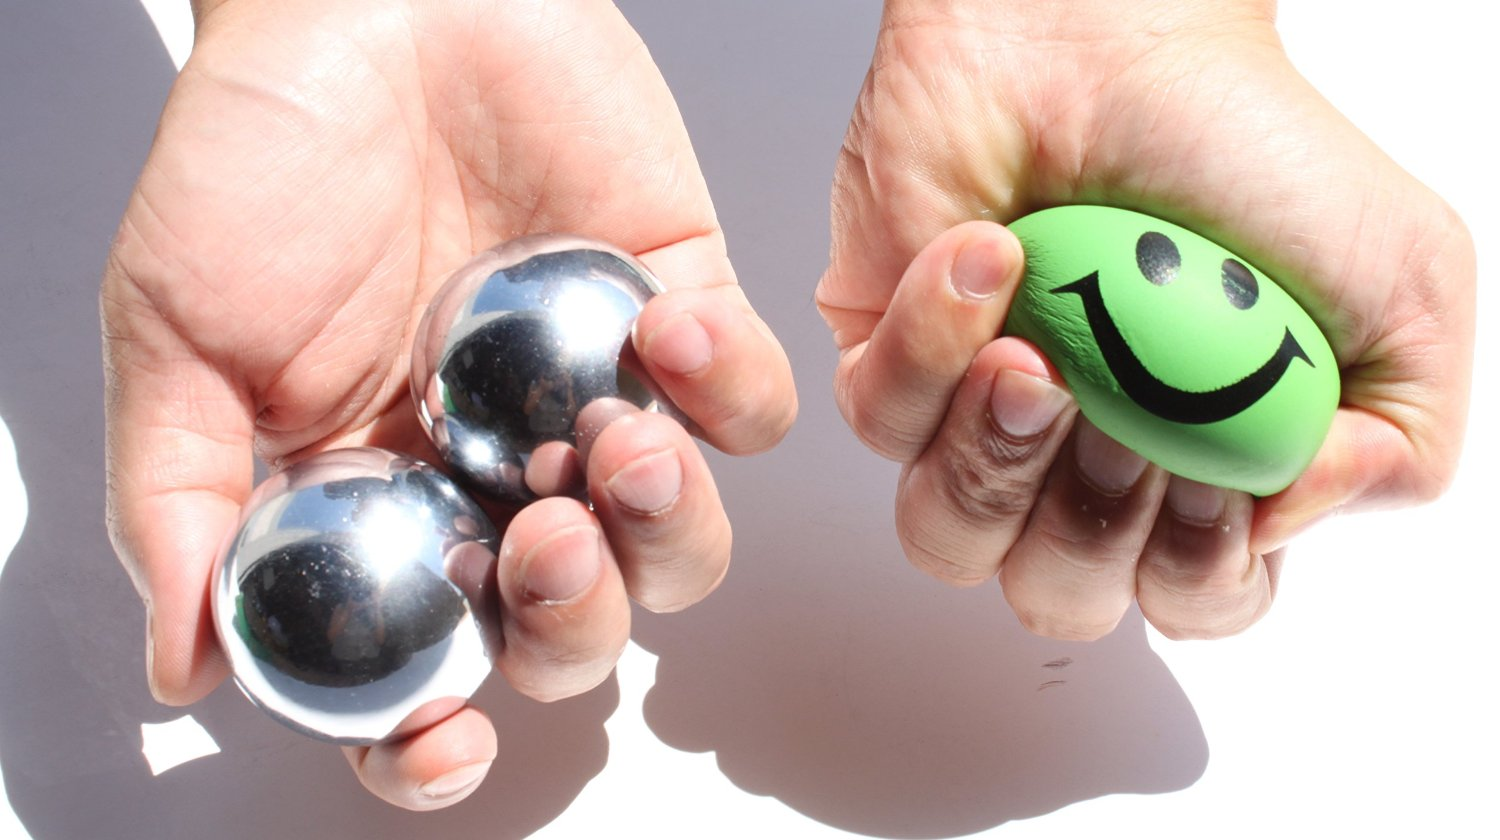 Ball Squeezing And Fingering Muscle Dude